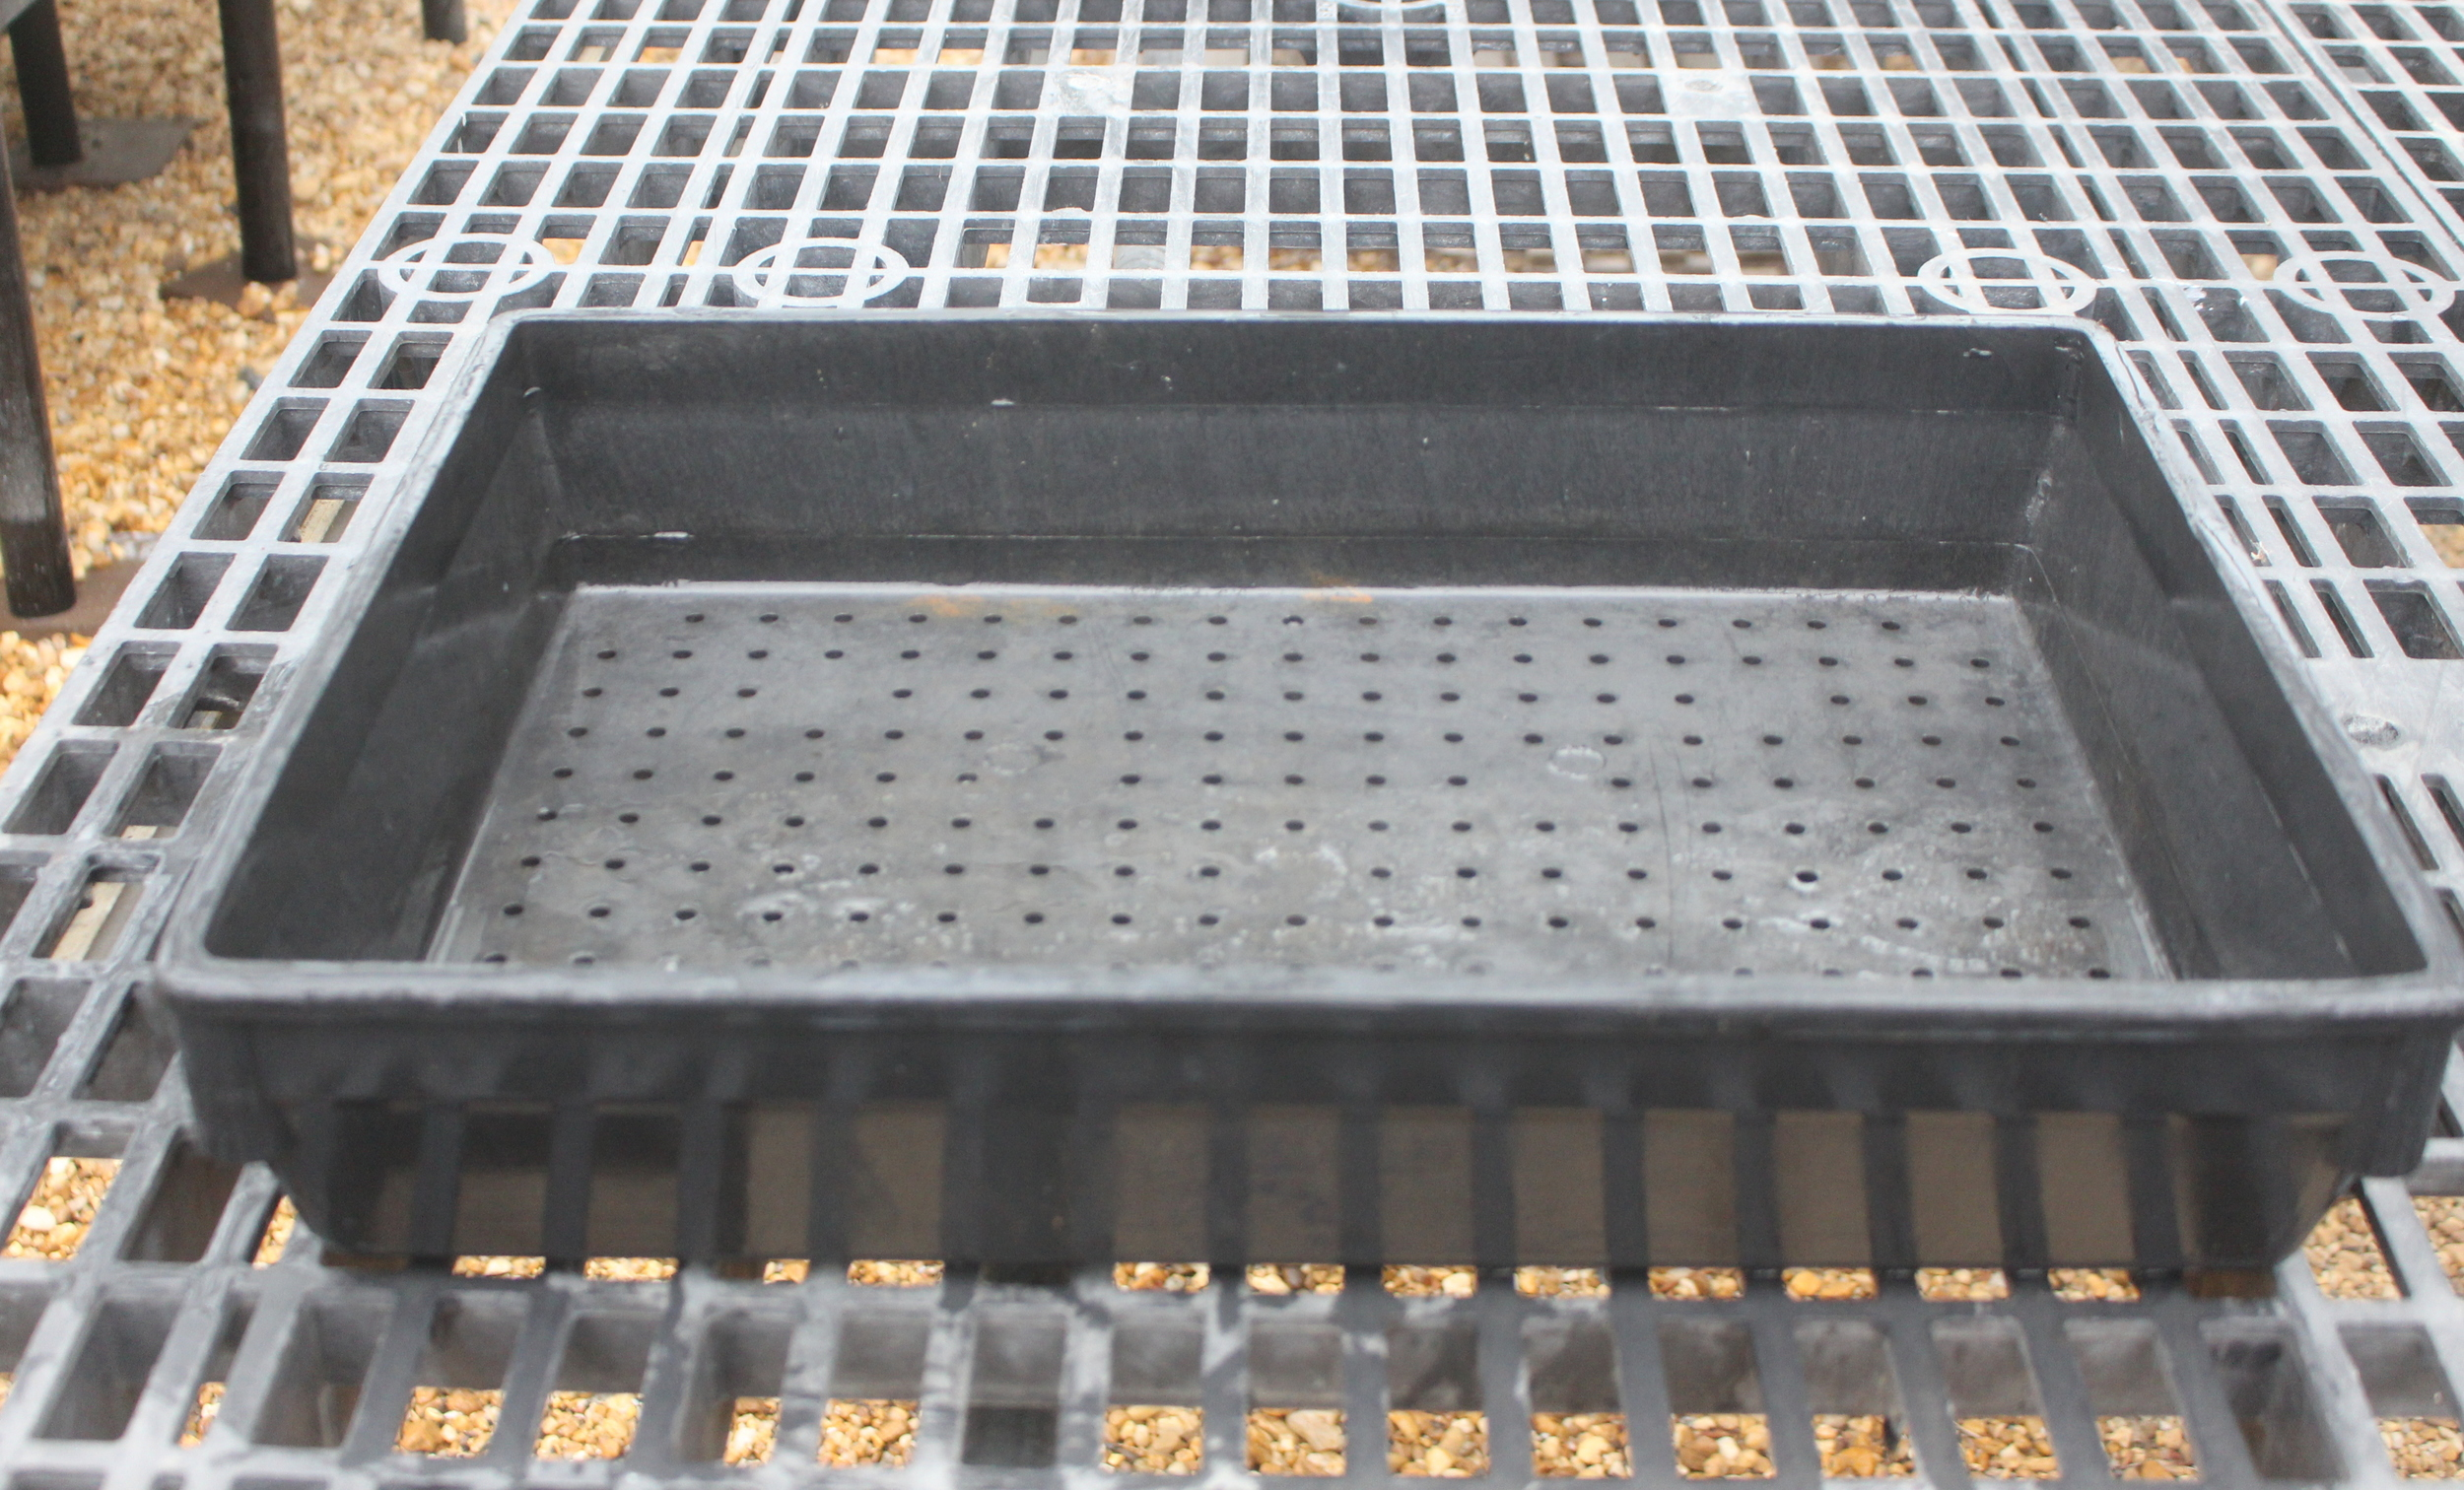 Use a tray with holes in the bottom for drainage.